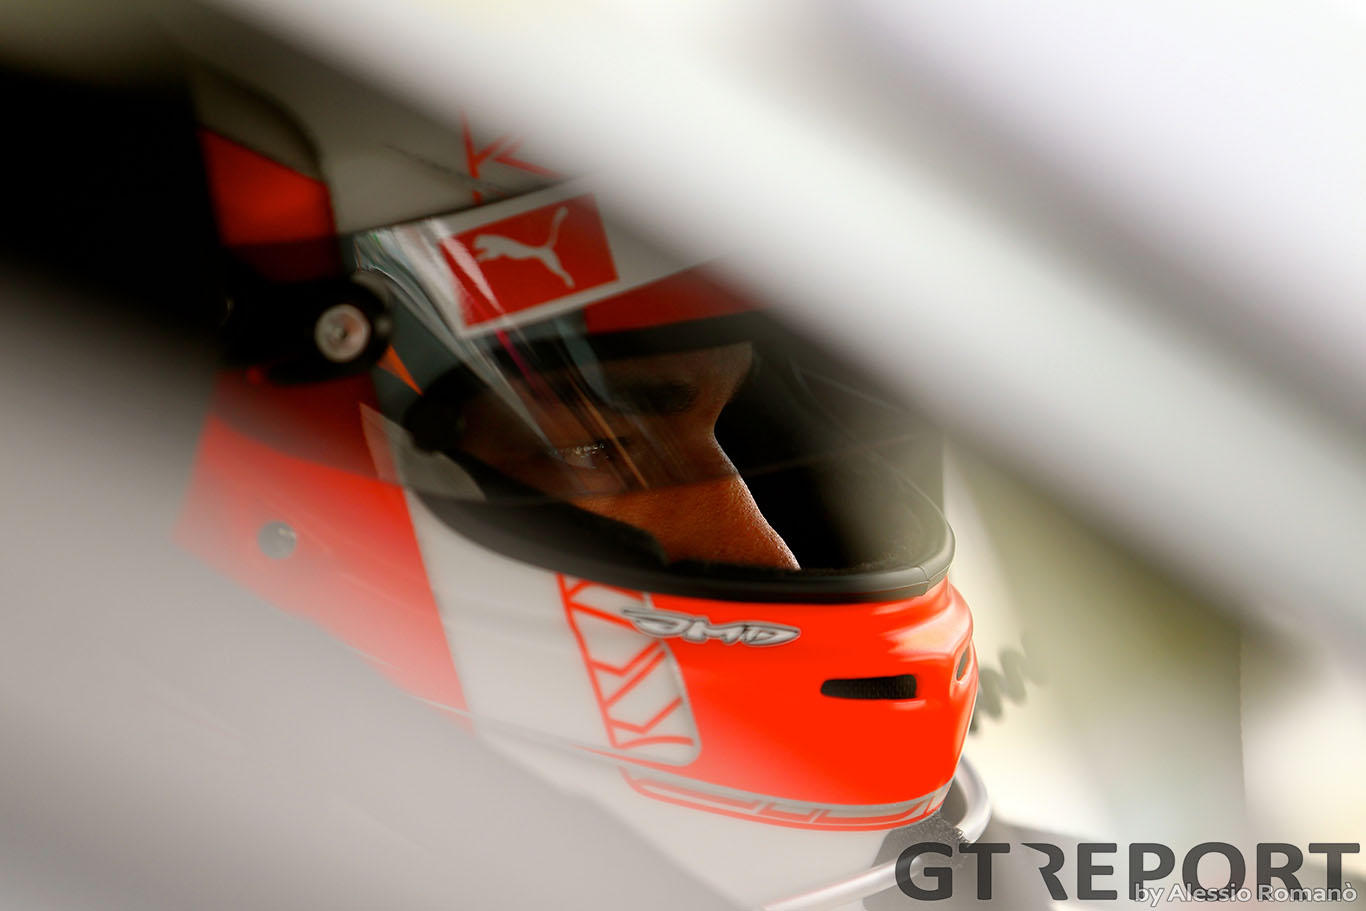 DTM Lausitzring qualifying 1 report: VDL brothers sweep race 1 front row